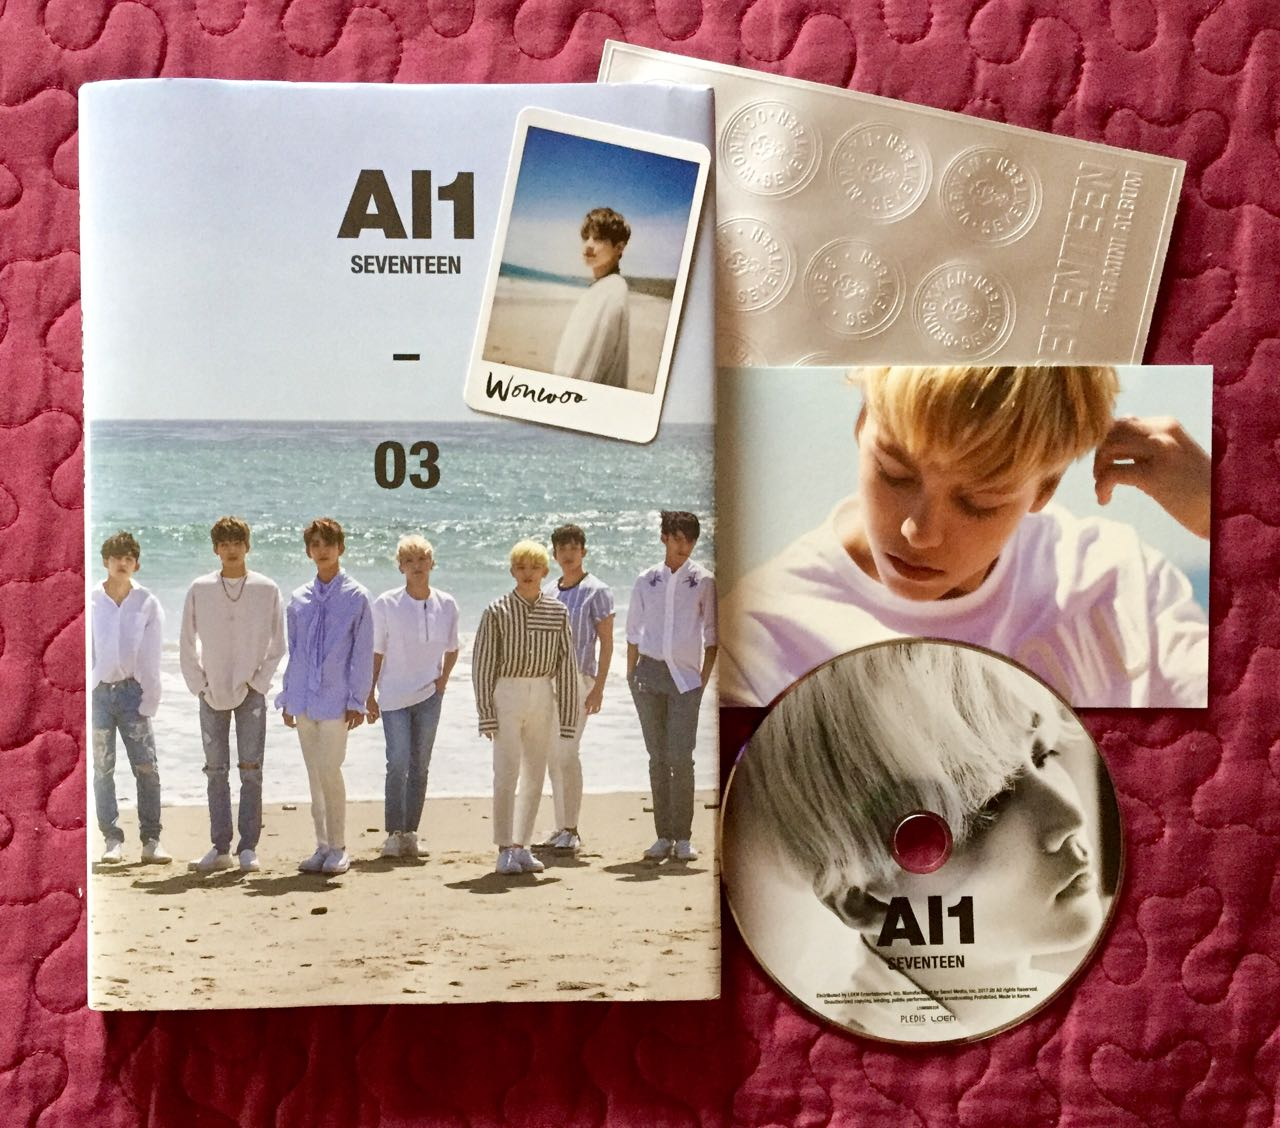 The Kpop Files: The Monthly Kpop Haul #1 2 – The Kats Cafe